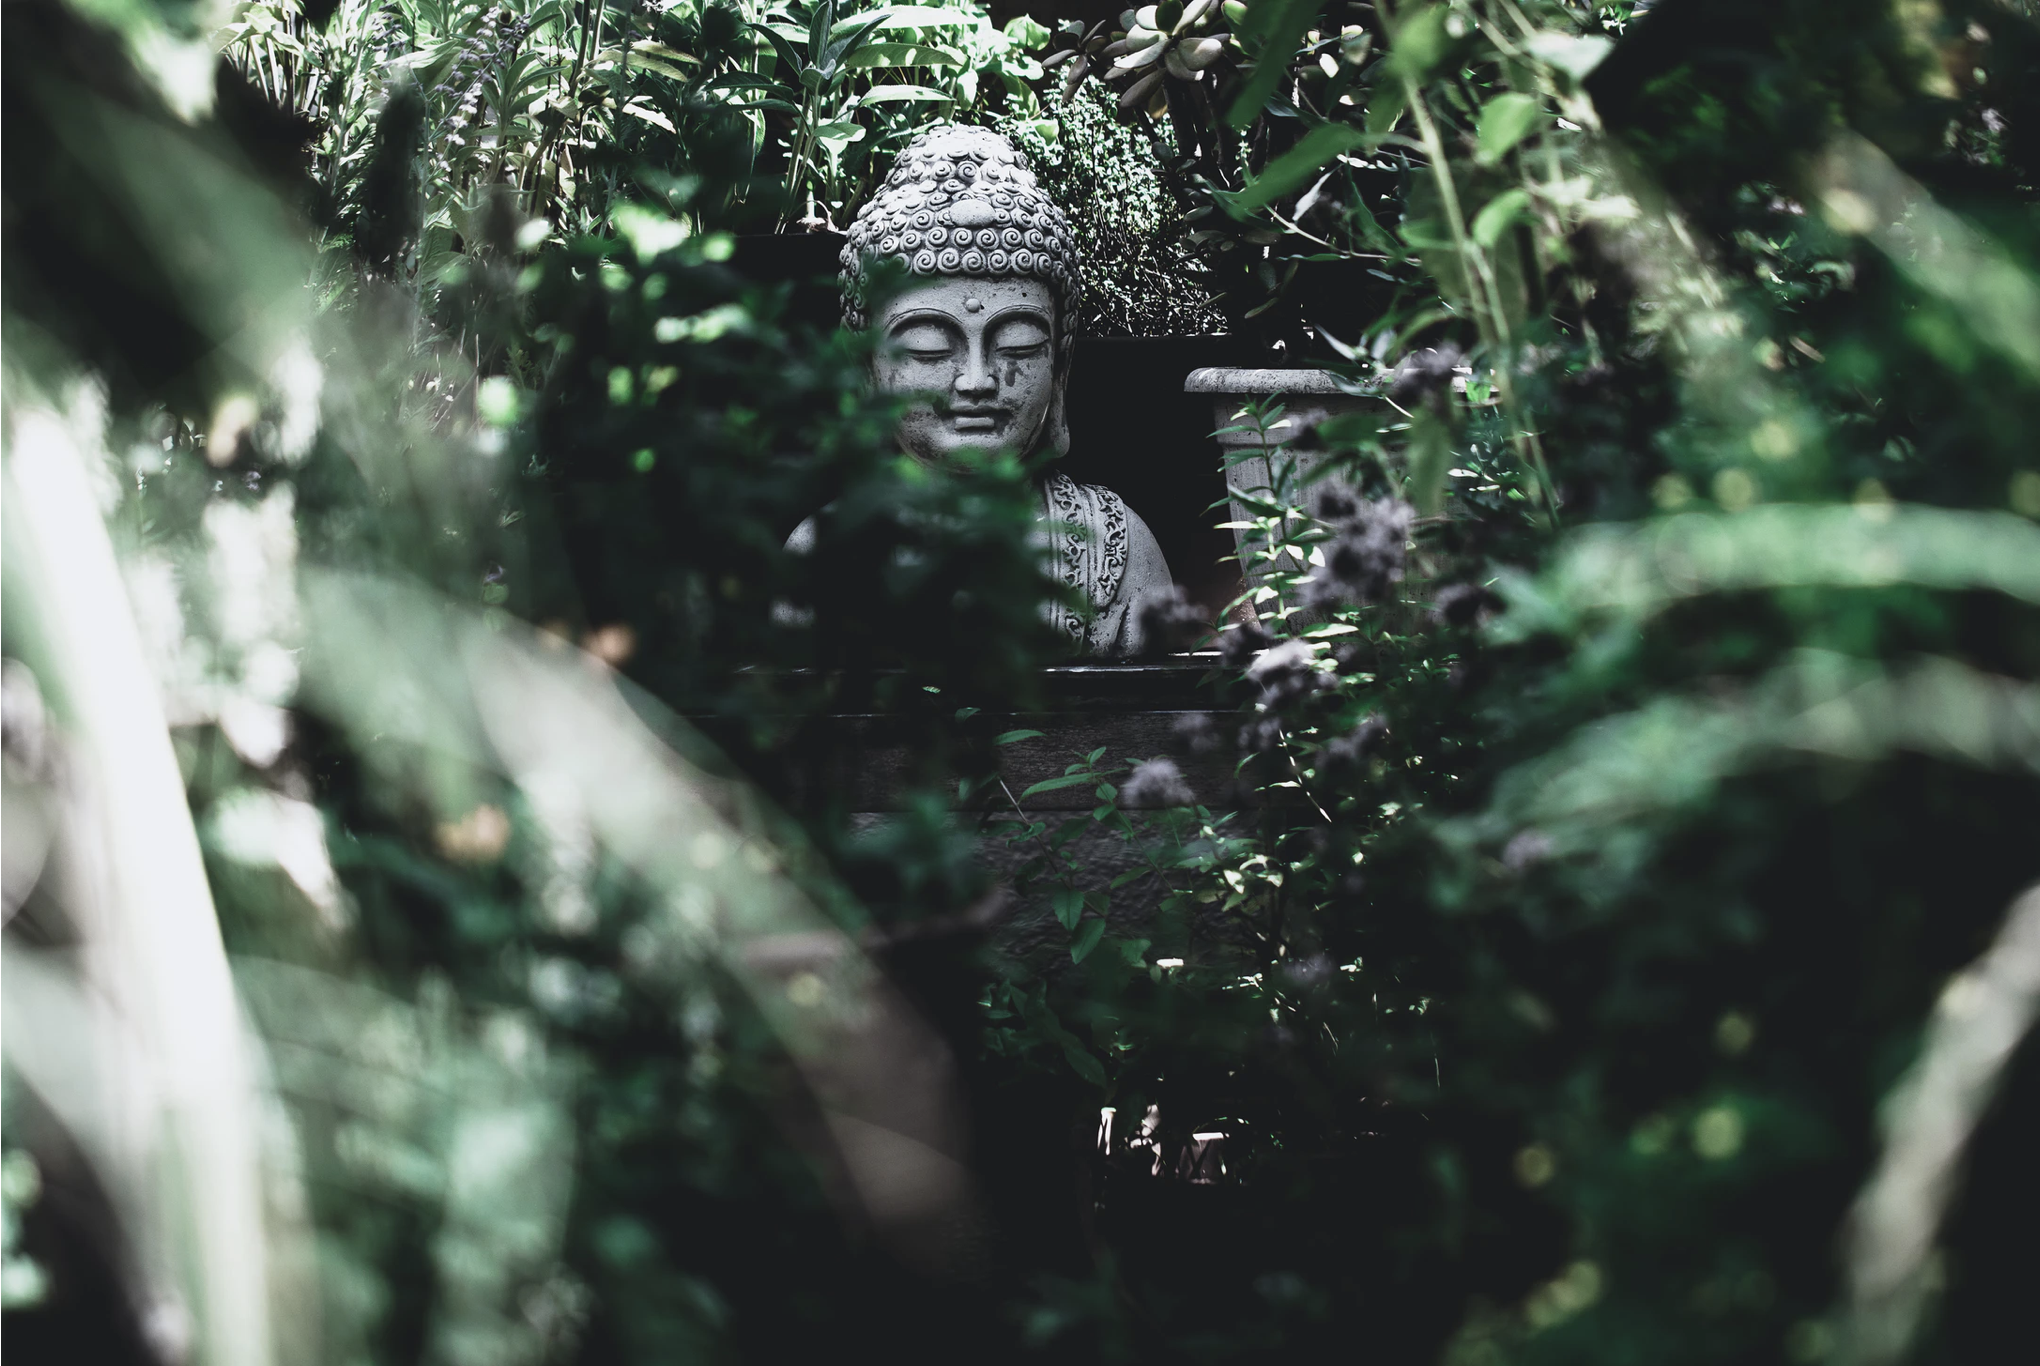 Buddha statue surrounded by greenery